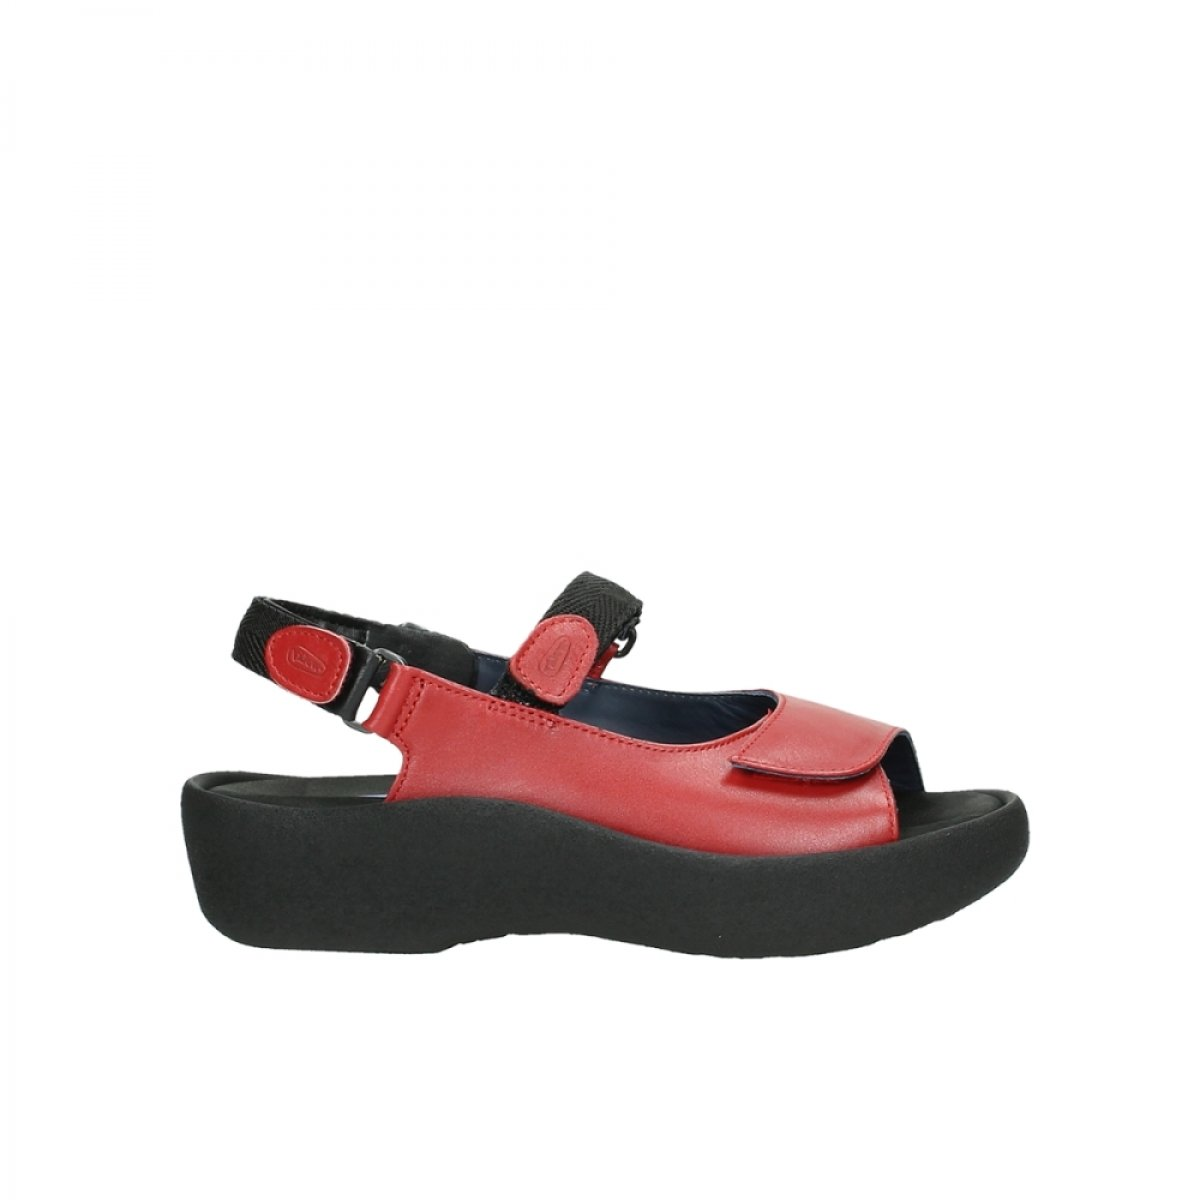 Wolky Comfort Jewel B0017ROIAI 37 M EU|30500 Red Leather